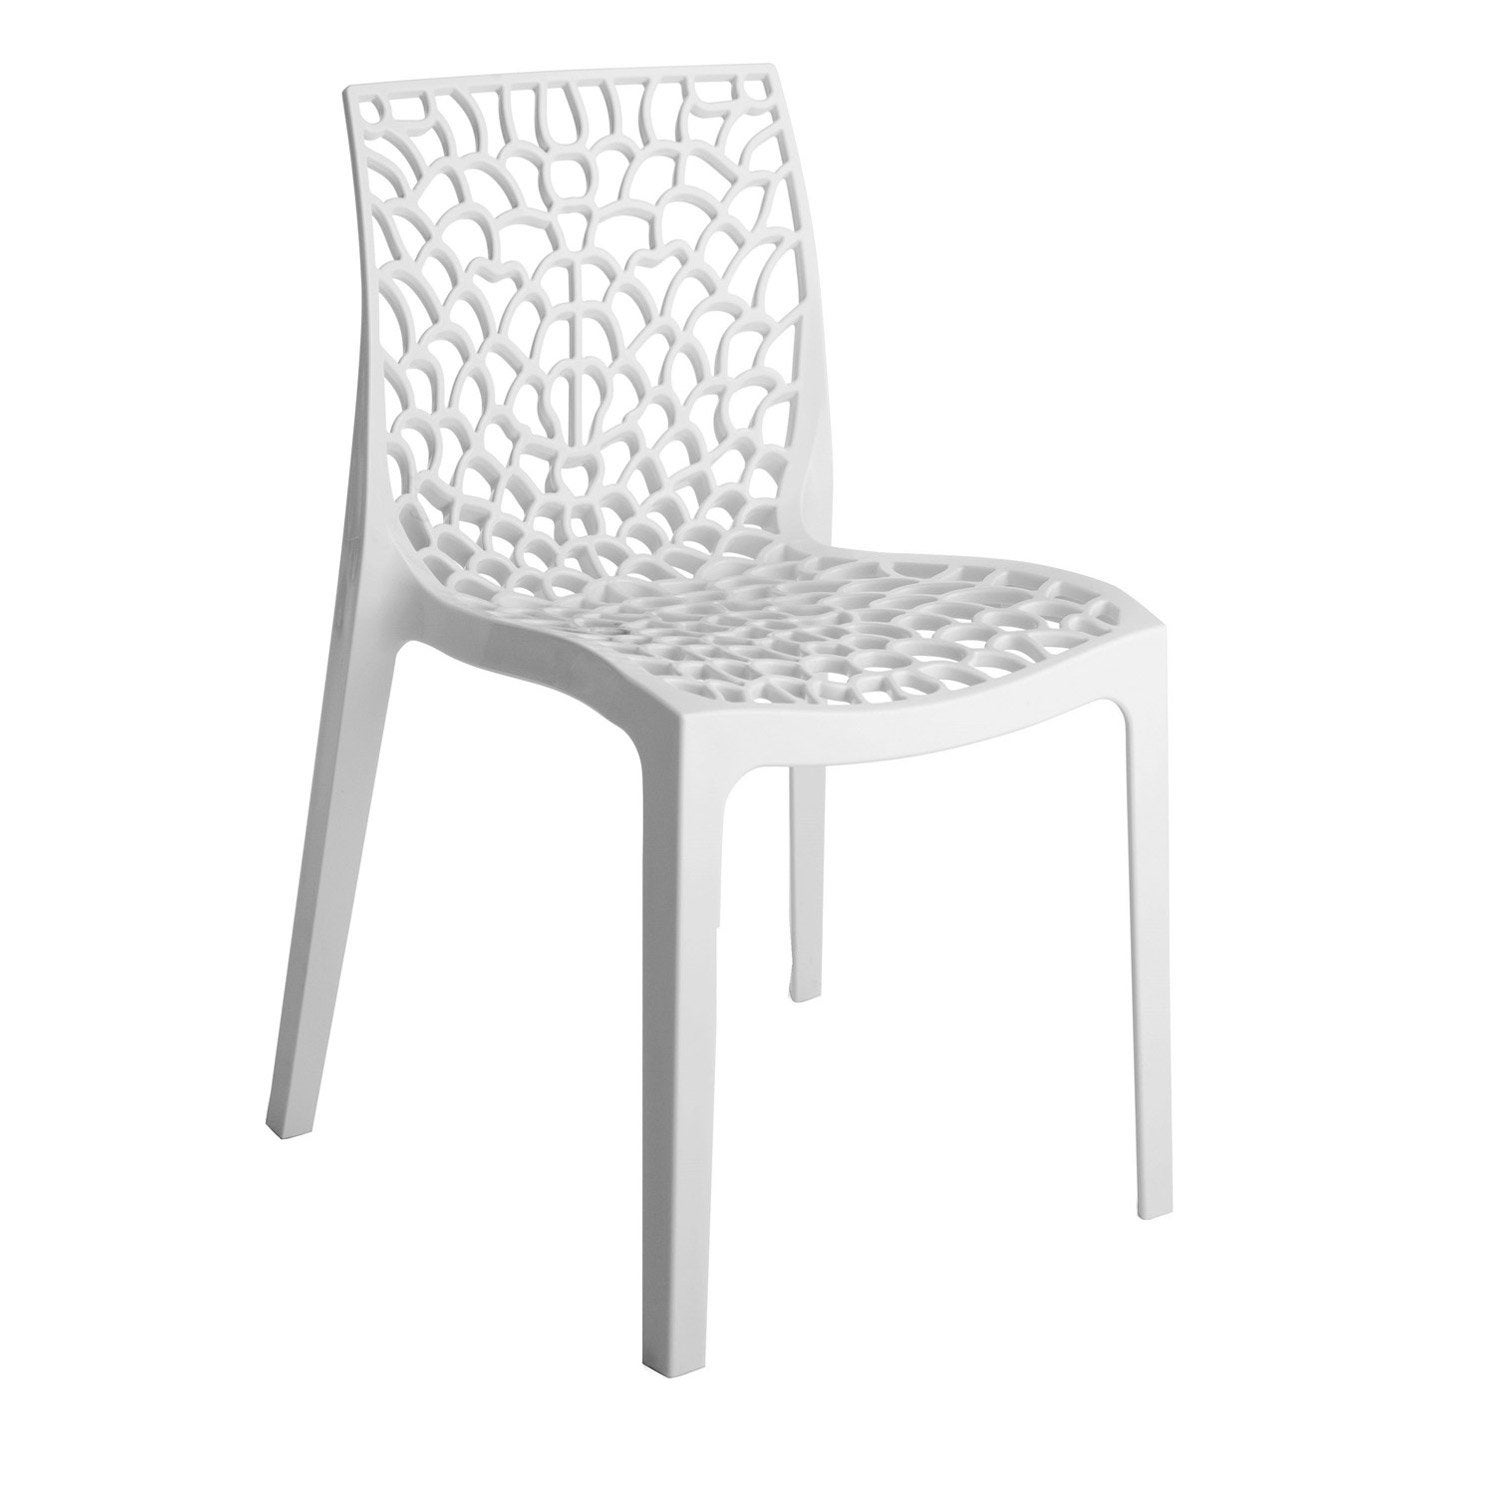 Chaise de jardin en r sine grafik blanc leroy merlin for Salon de jardin blanc design